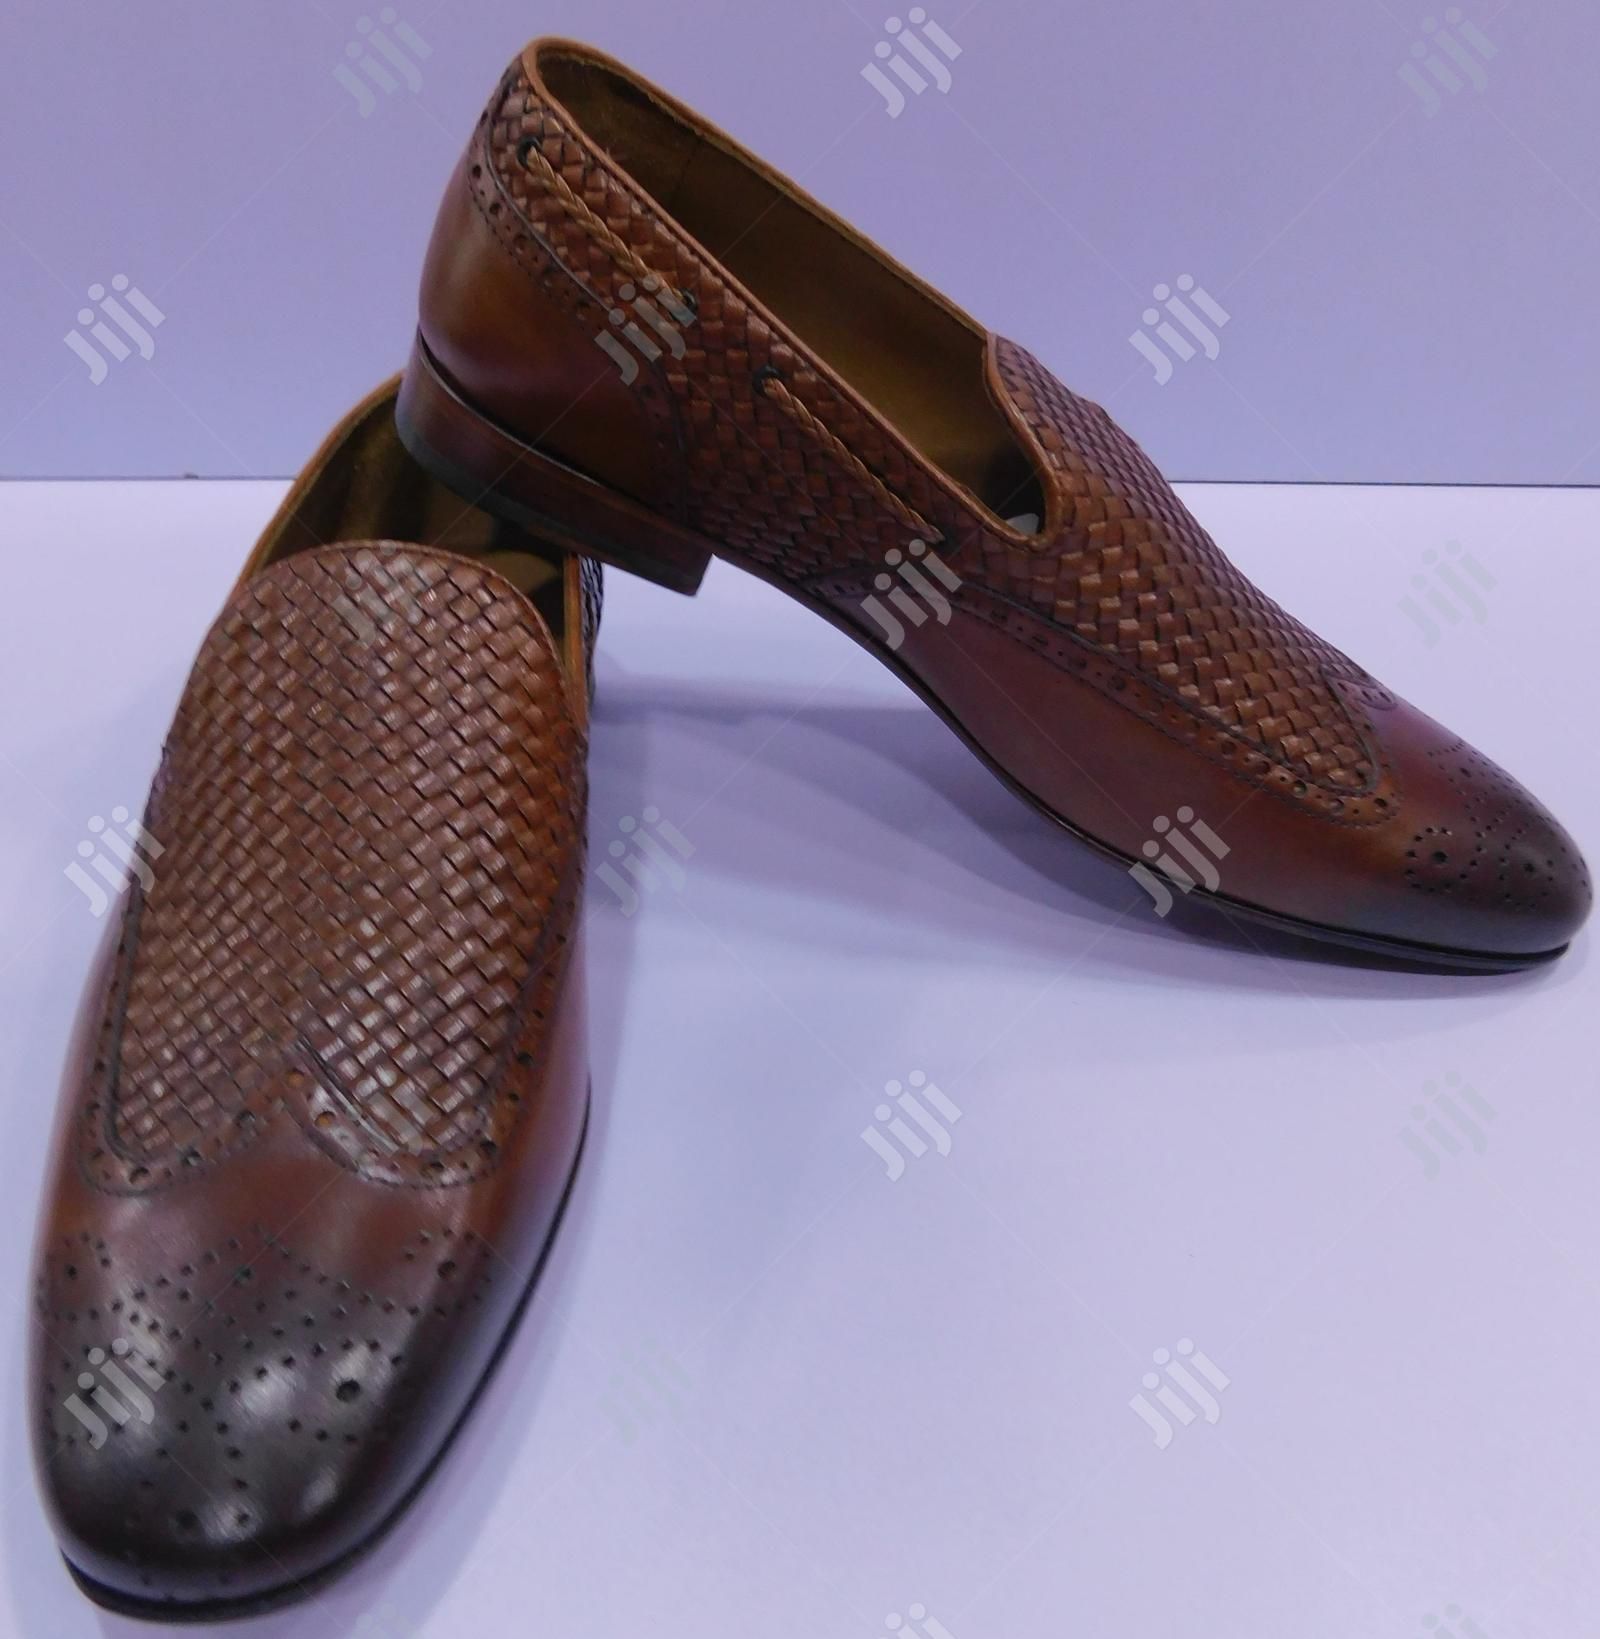 KHARD Coporate Men Shoes | Shoes for sale in Ojodu, Lagos State, Nigeria